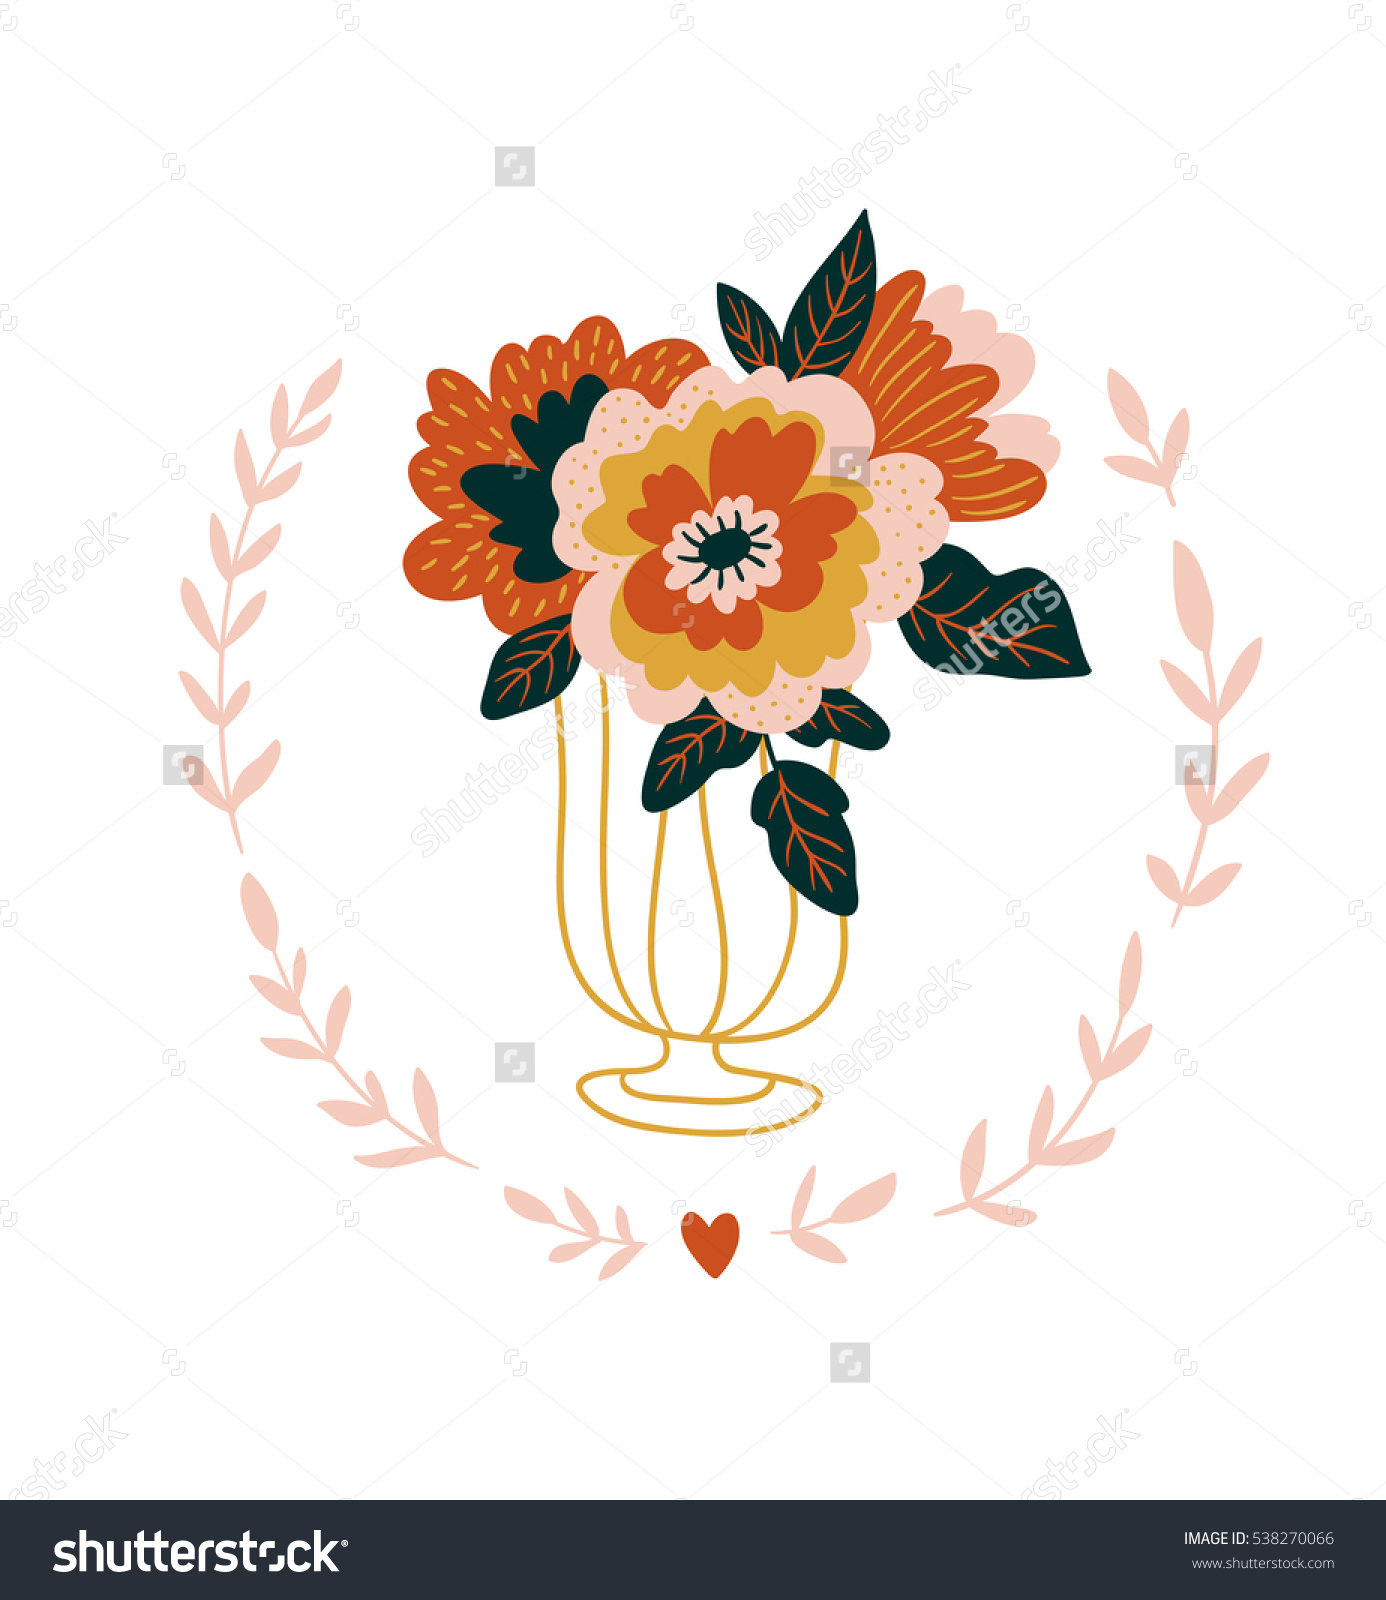 Hand Drawn Flowers Glass Scandinavian Style Stock Vector 538270066.